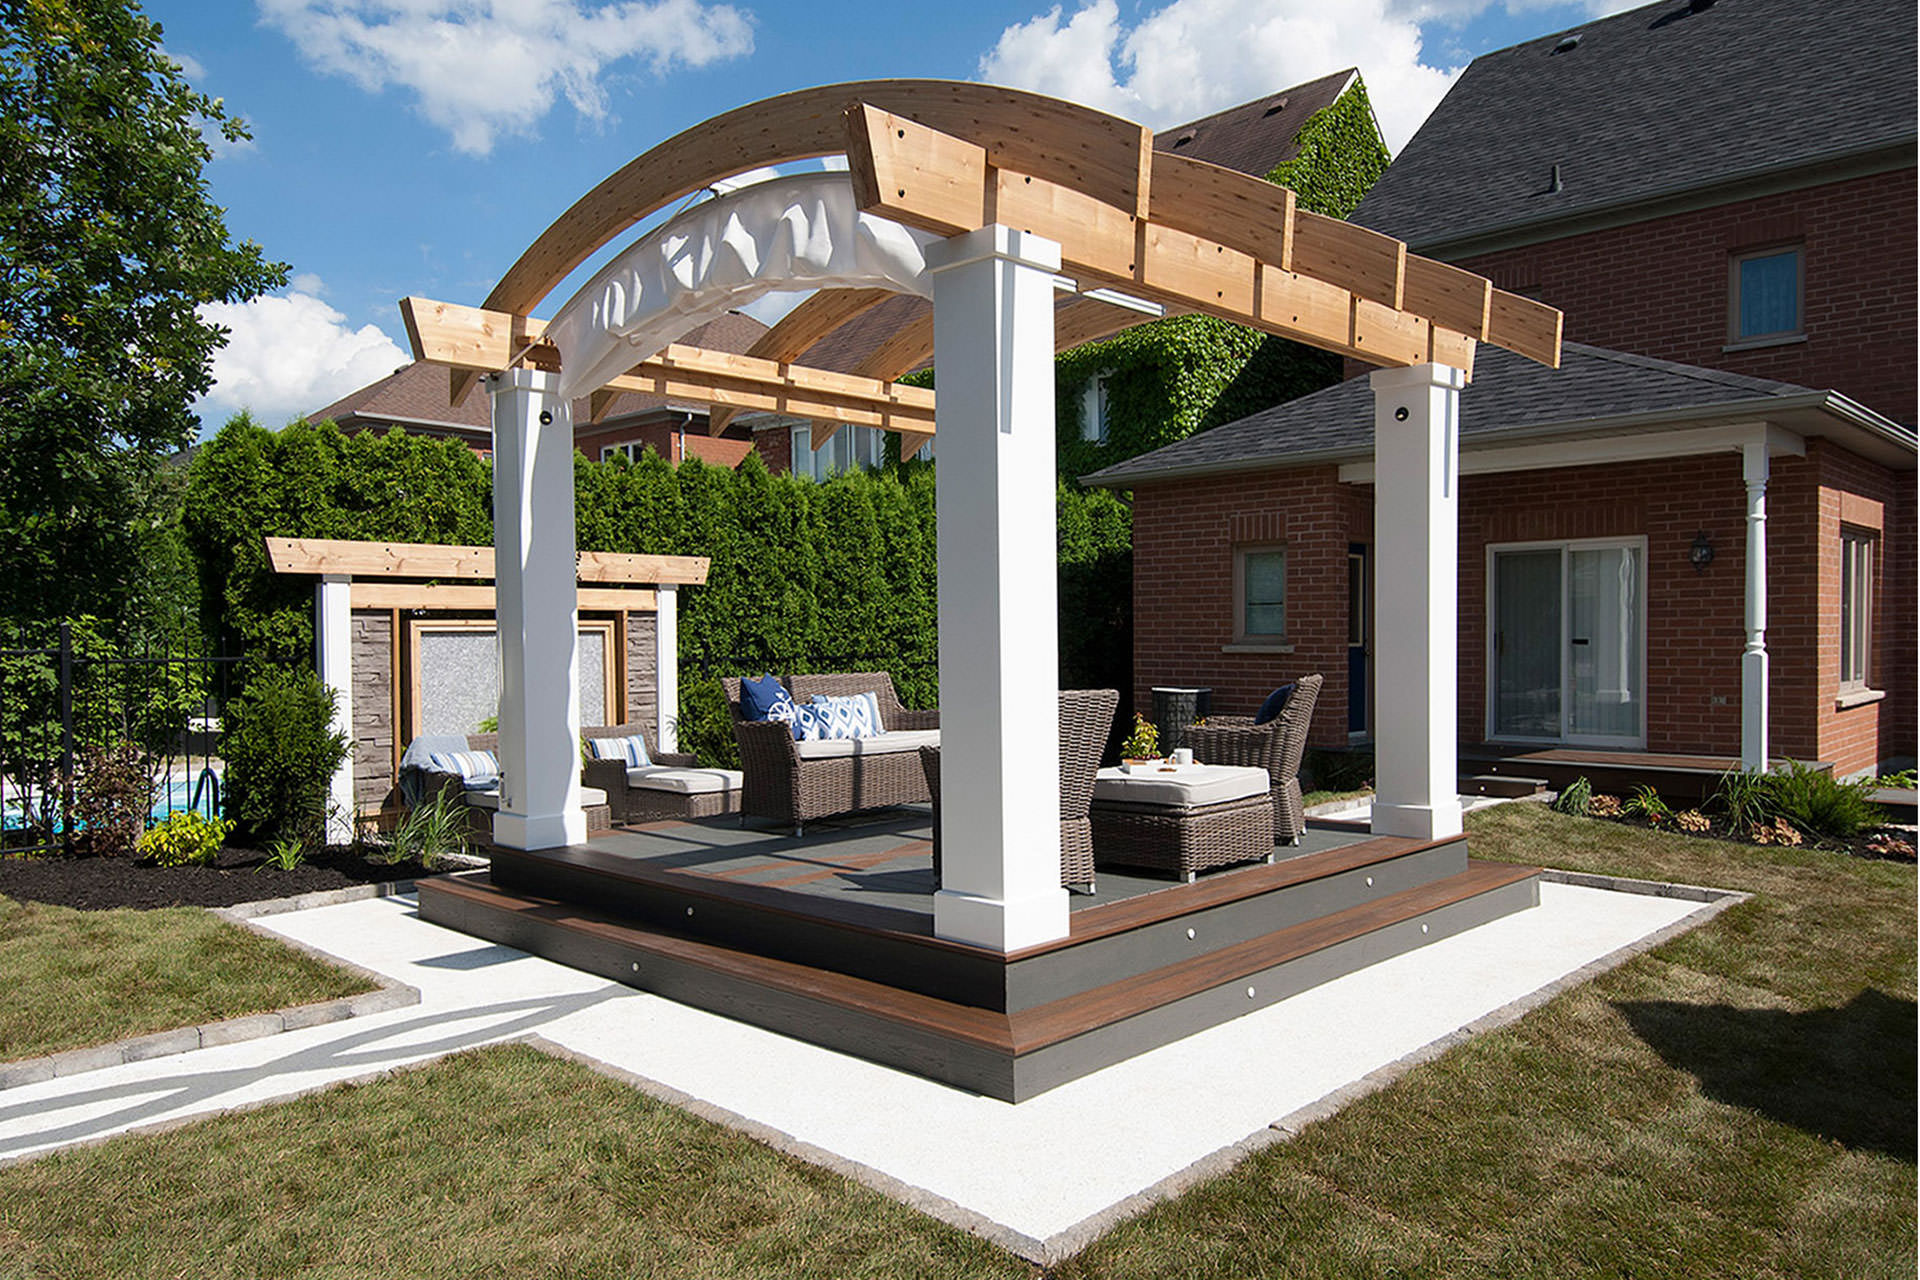 Arched Retractable Awning Hgtv S Decked Out